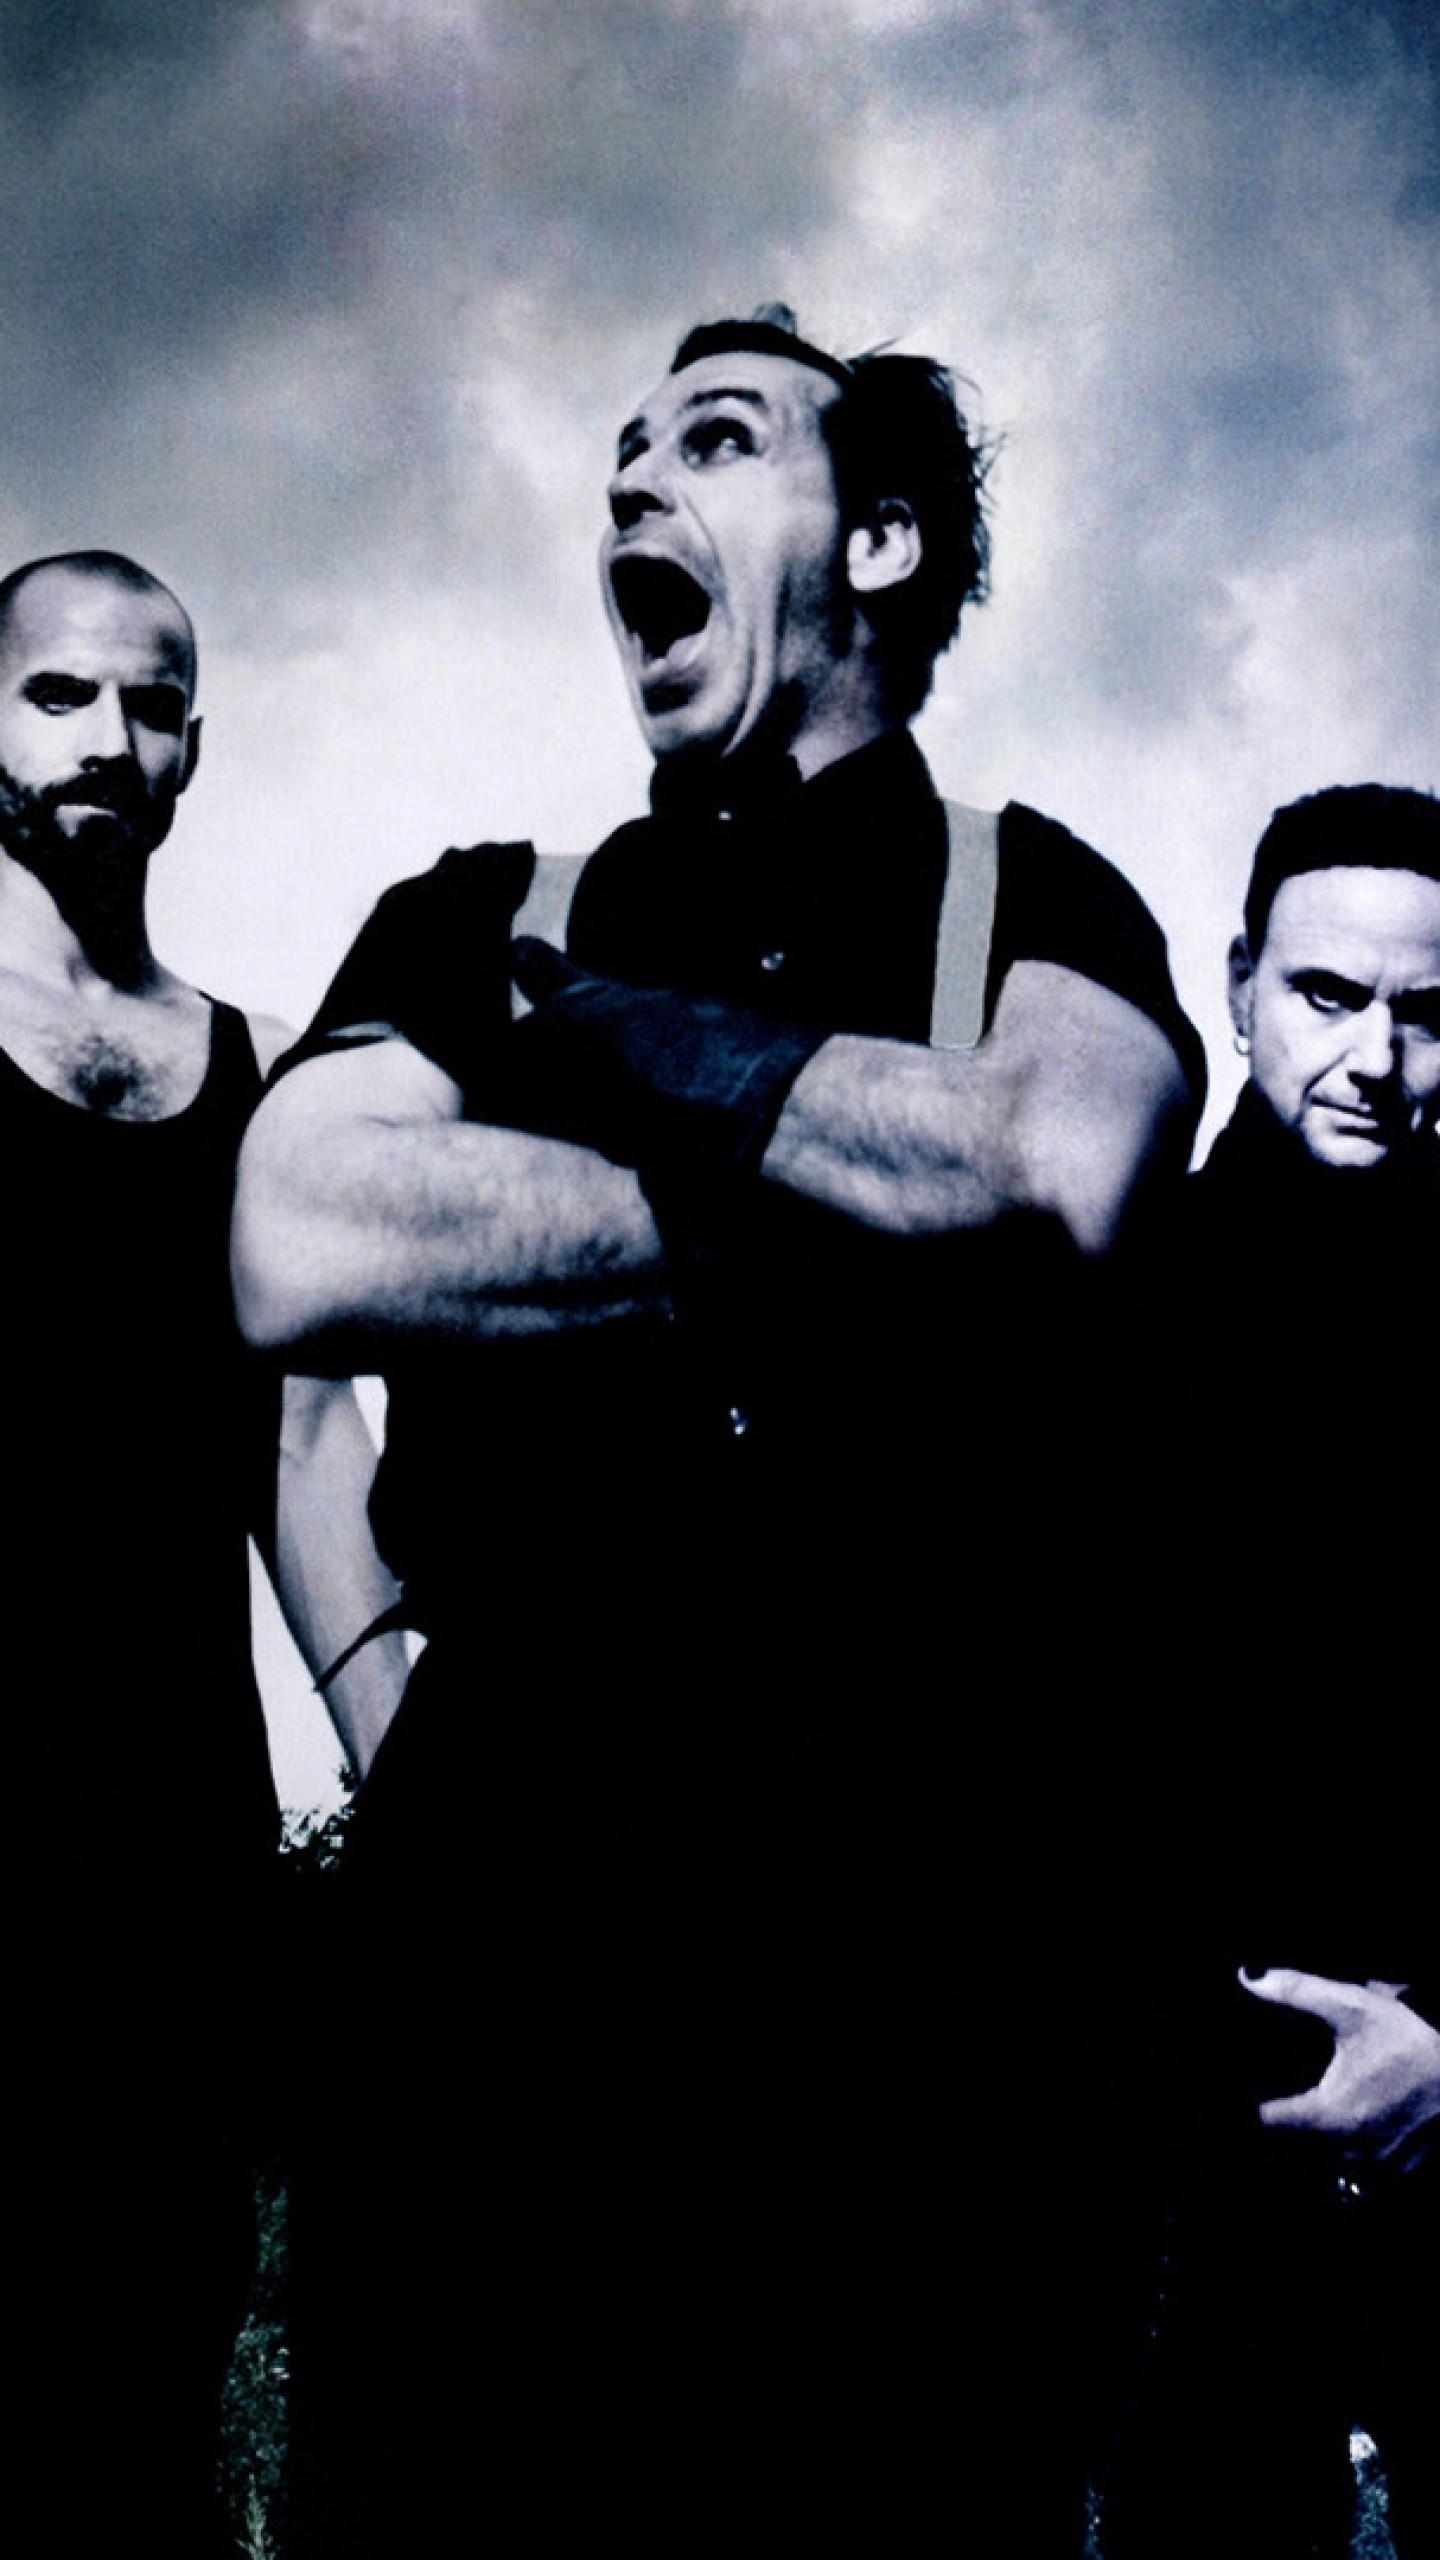 1440x2560 Preview wallpaper rammstein, scream, sky, clouds, image